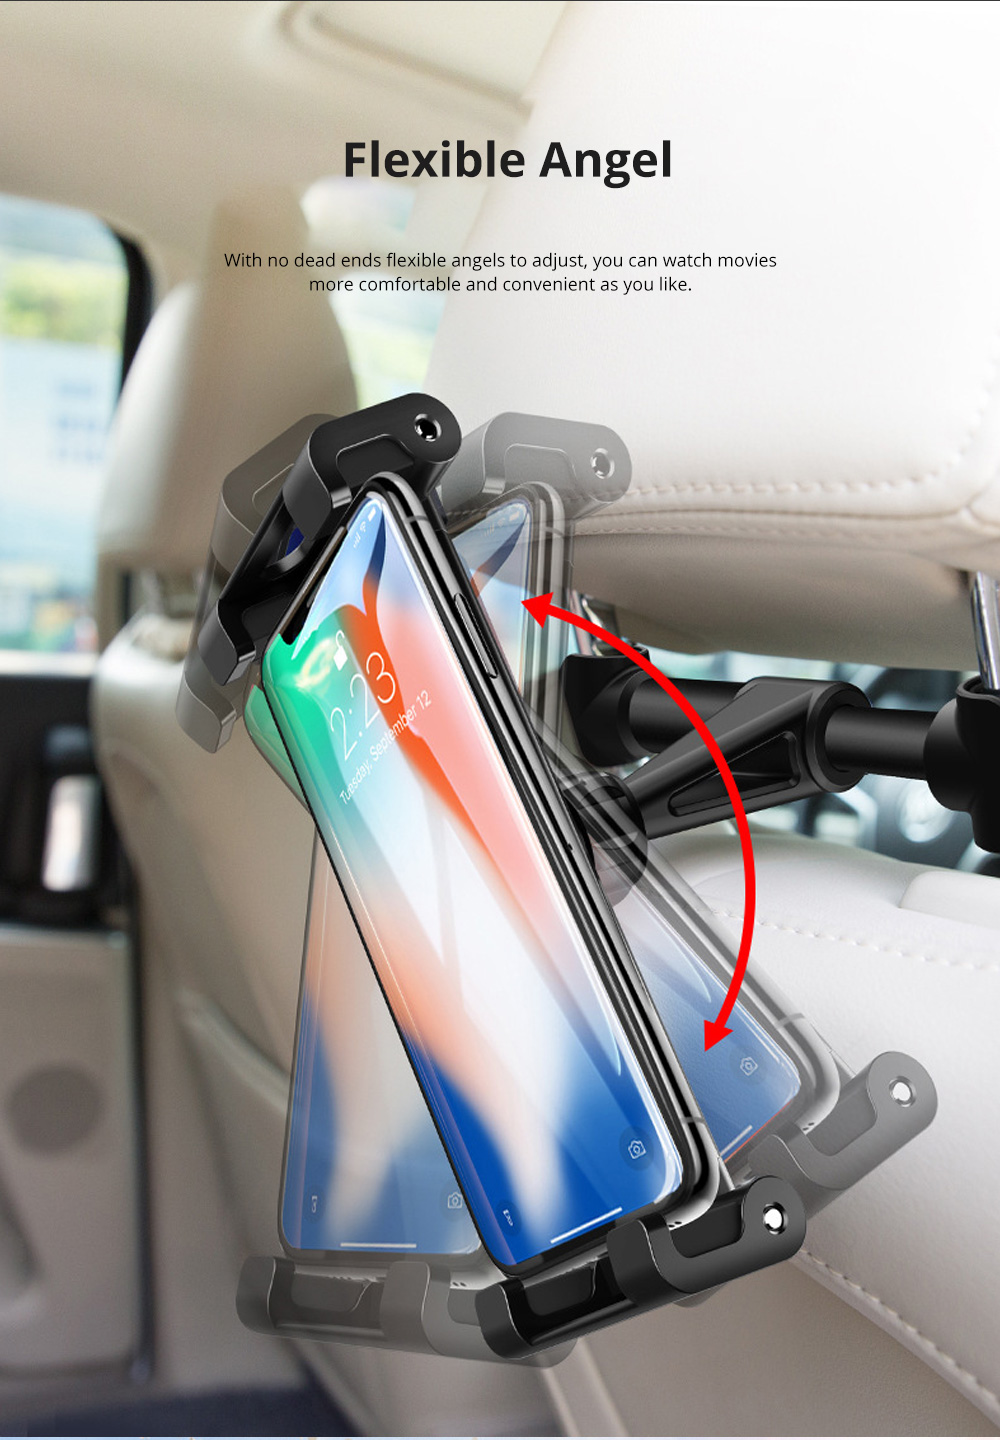 ROCK ABS Aluminium Alloy Material Vehicle-mounted Phone iPad Holder Multiple Functional Universal 4.7 to 12.9 inch Car Headrest Mount Stand 3